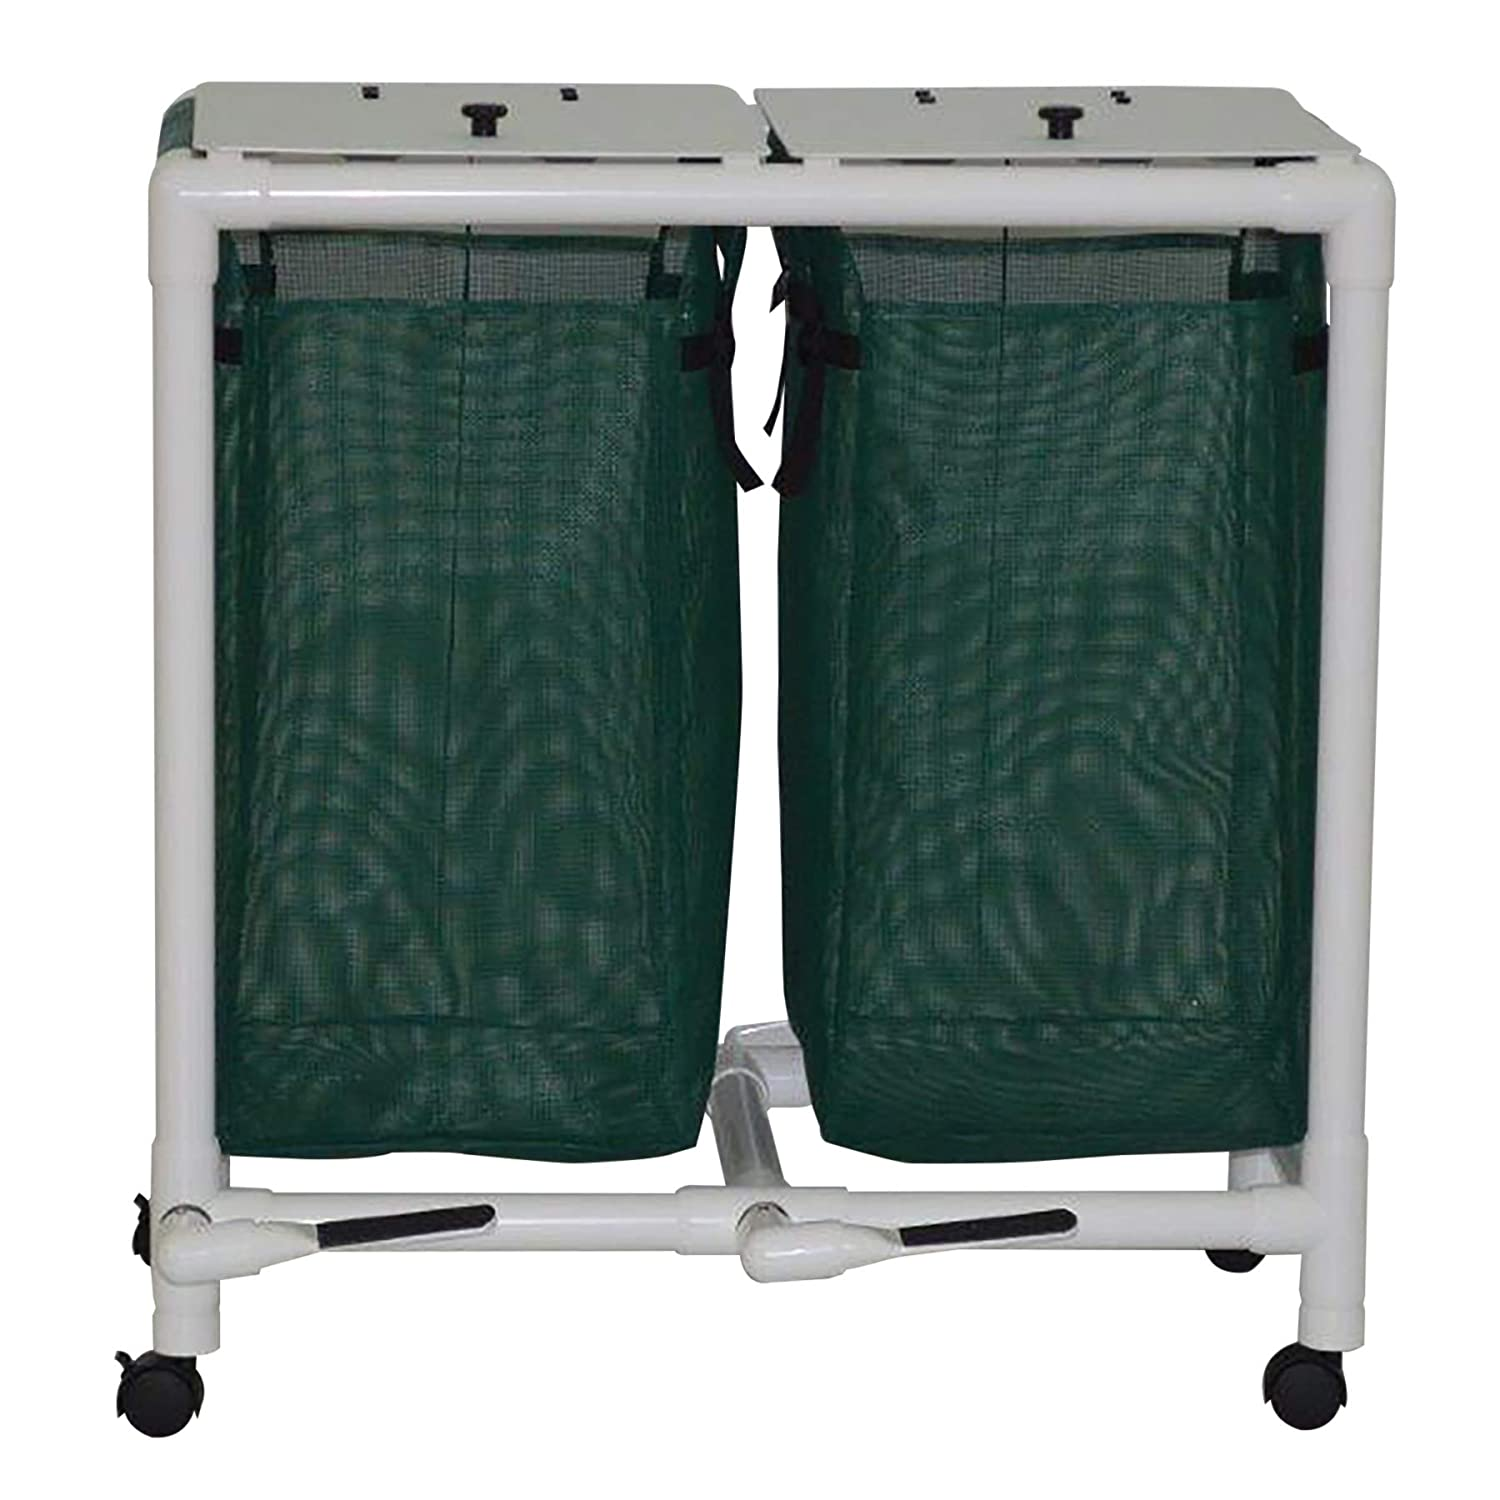 In a popularity MJM International E218-D-2TW-FP Echo Jumbo New mail order Double Hamper with Fo